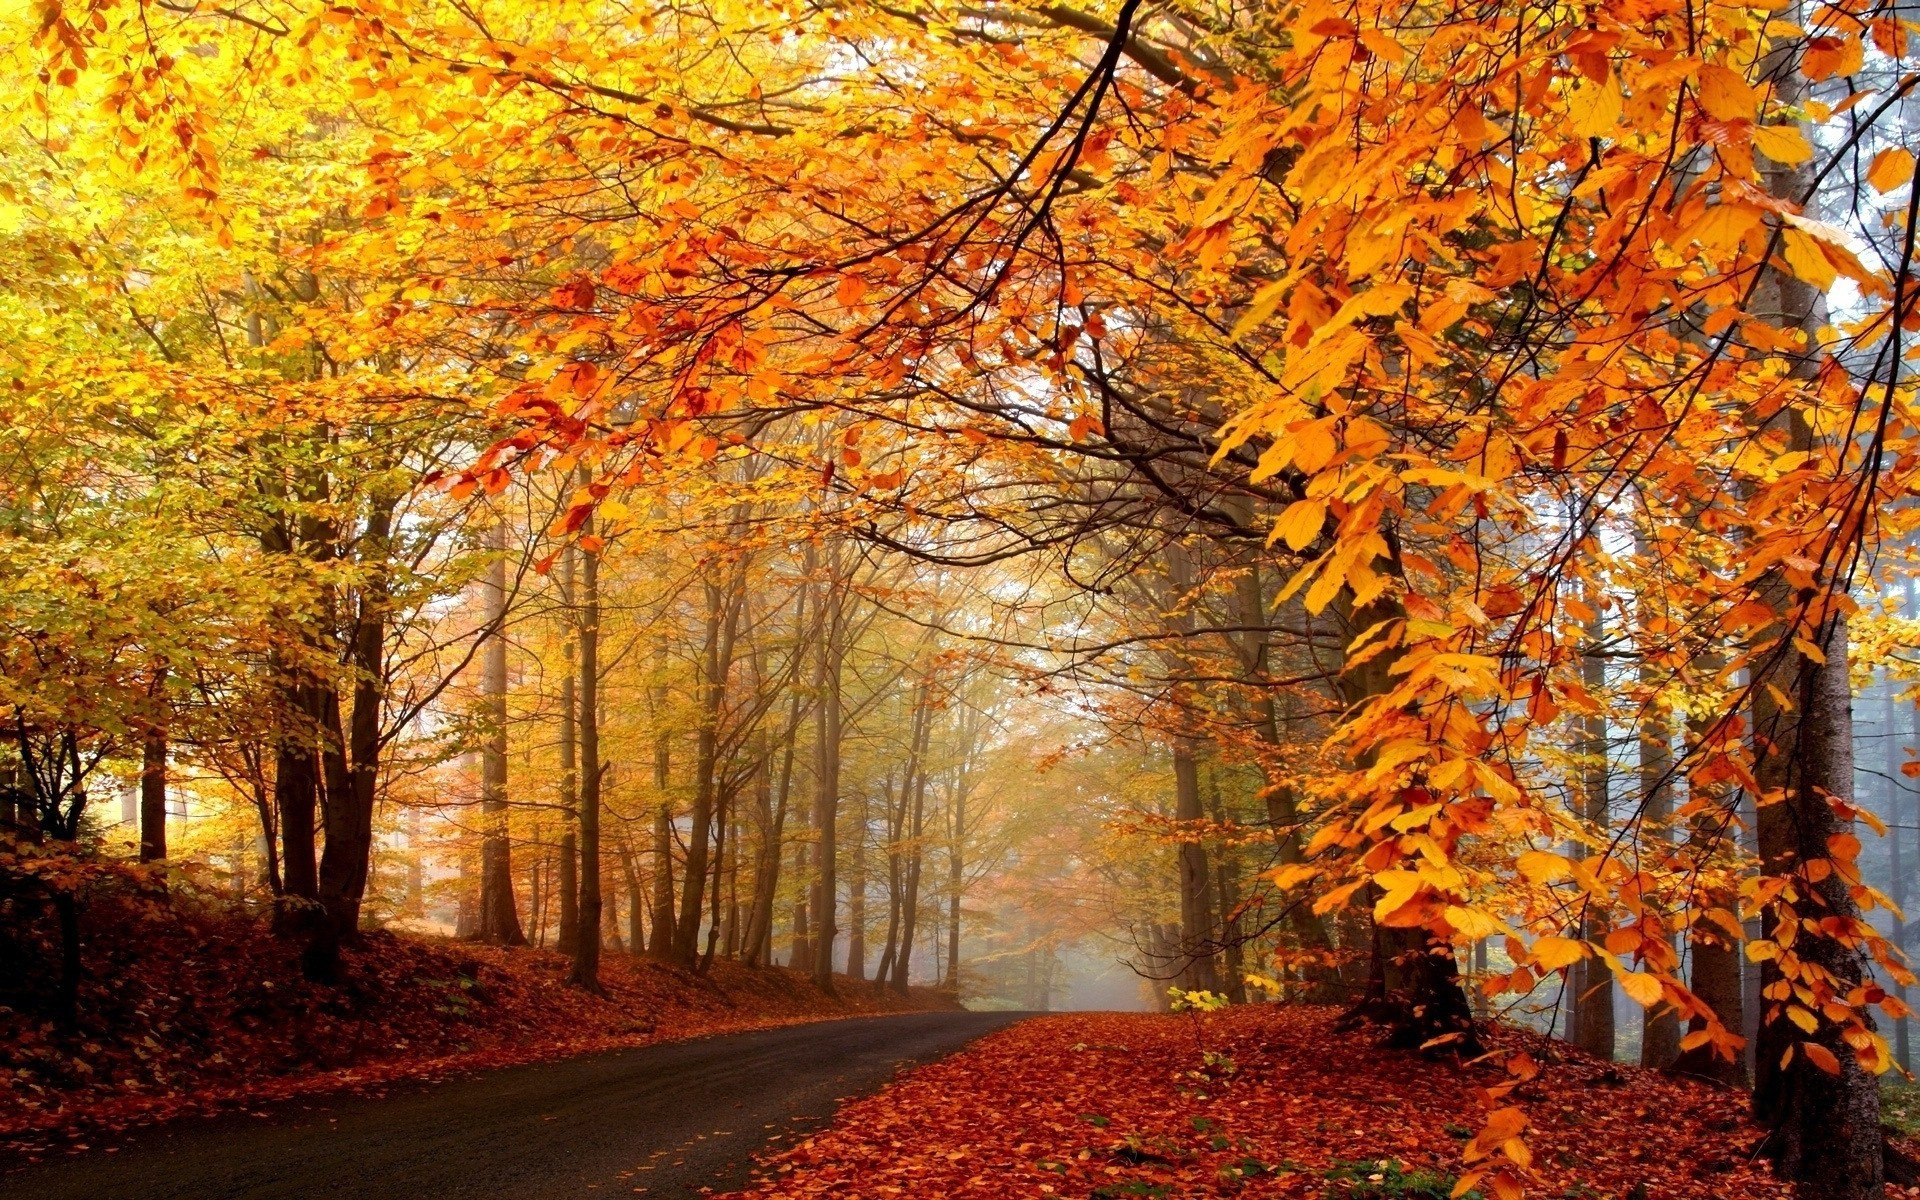 … Great Fall Backgrounds Tumblr Wallpaper Download free wallpapers and  desktop backgrounds in a variety of screen Nice …